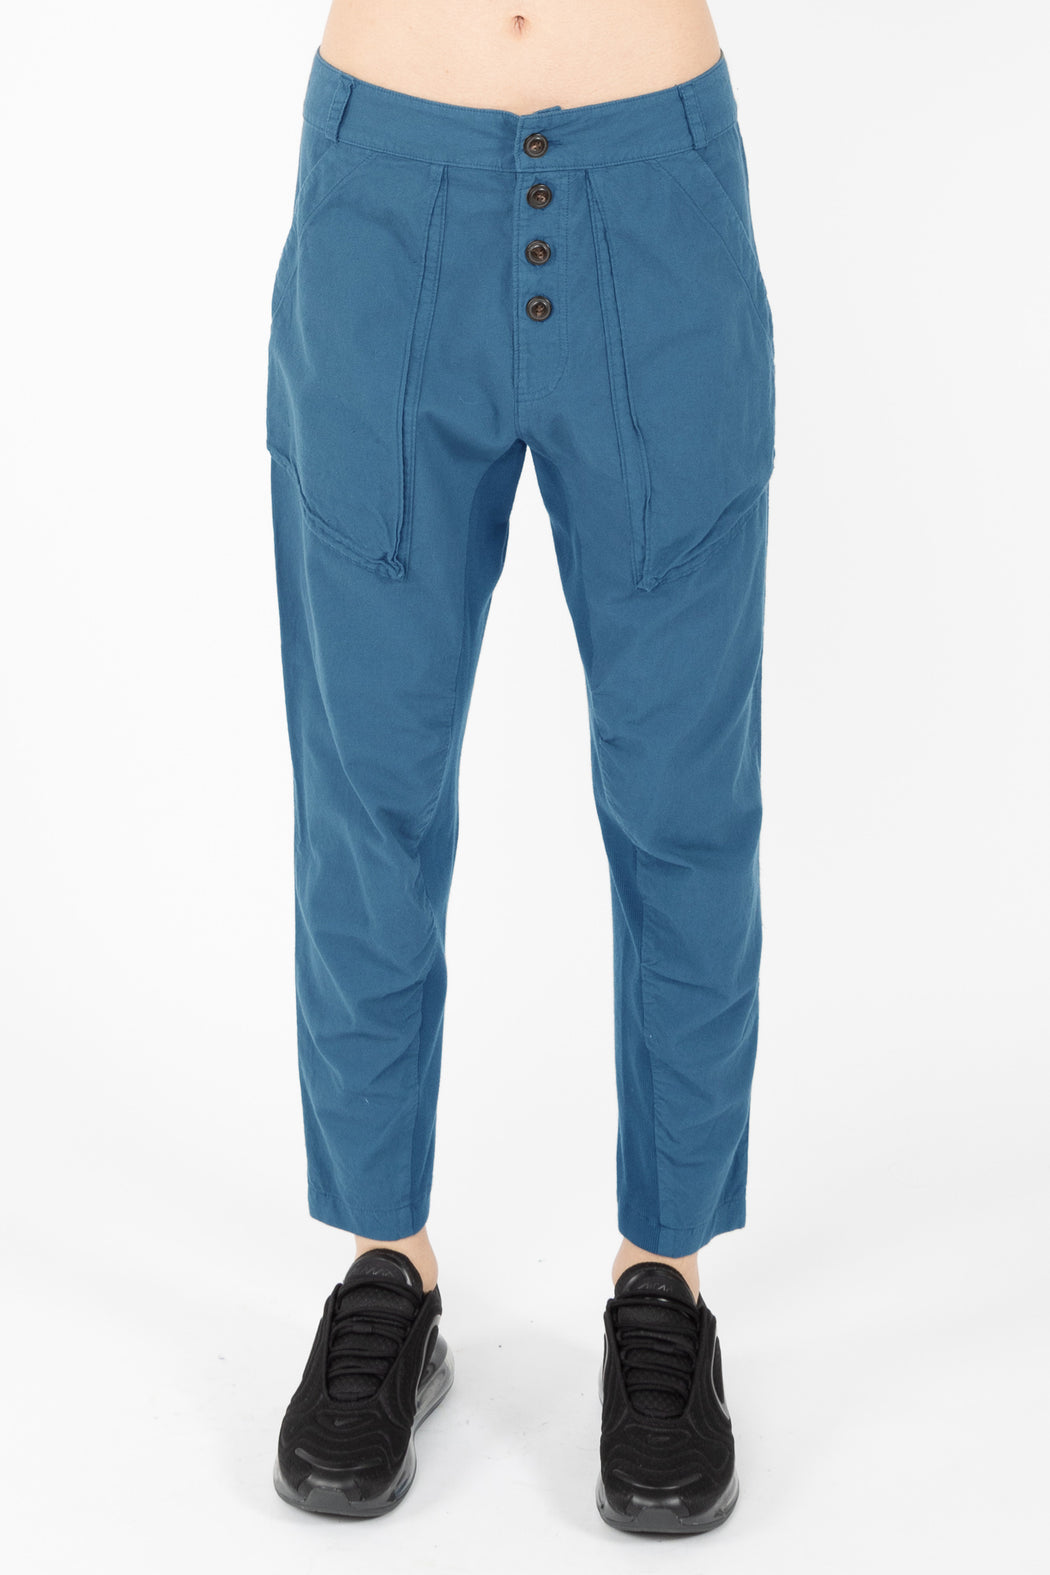 An incredibly soft, relaxed, lightweight pant with an organic cotton muslin body has an organic cotton knit inset at the inseam for style and comfort. A mid-rise, exposed button fly pant with deep gusseted front pockets, back patch pockets and belt loops.The softened cotton will loosen with wear, the initial fit should be snug.